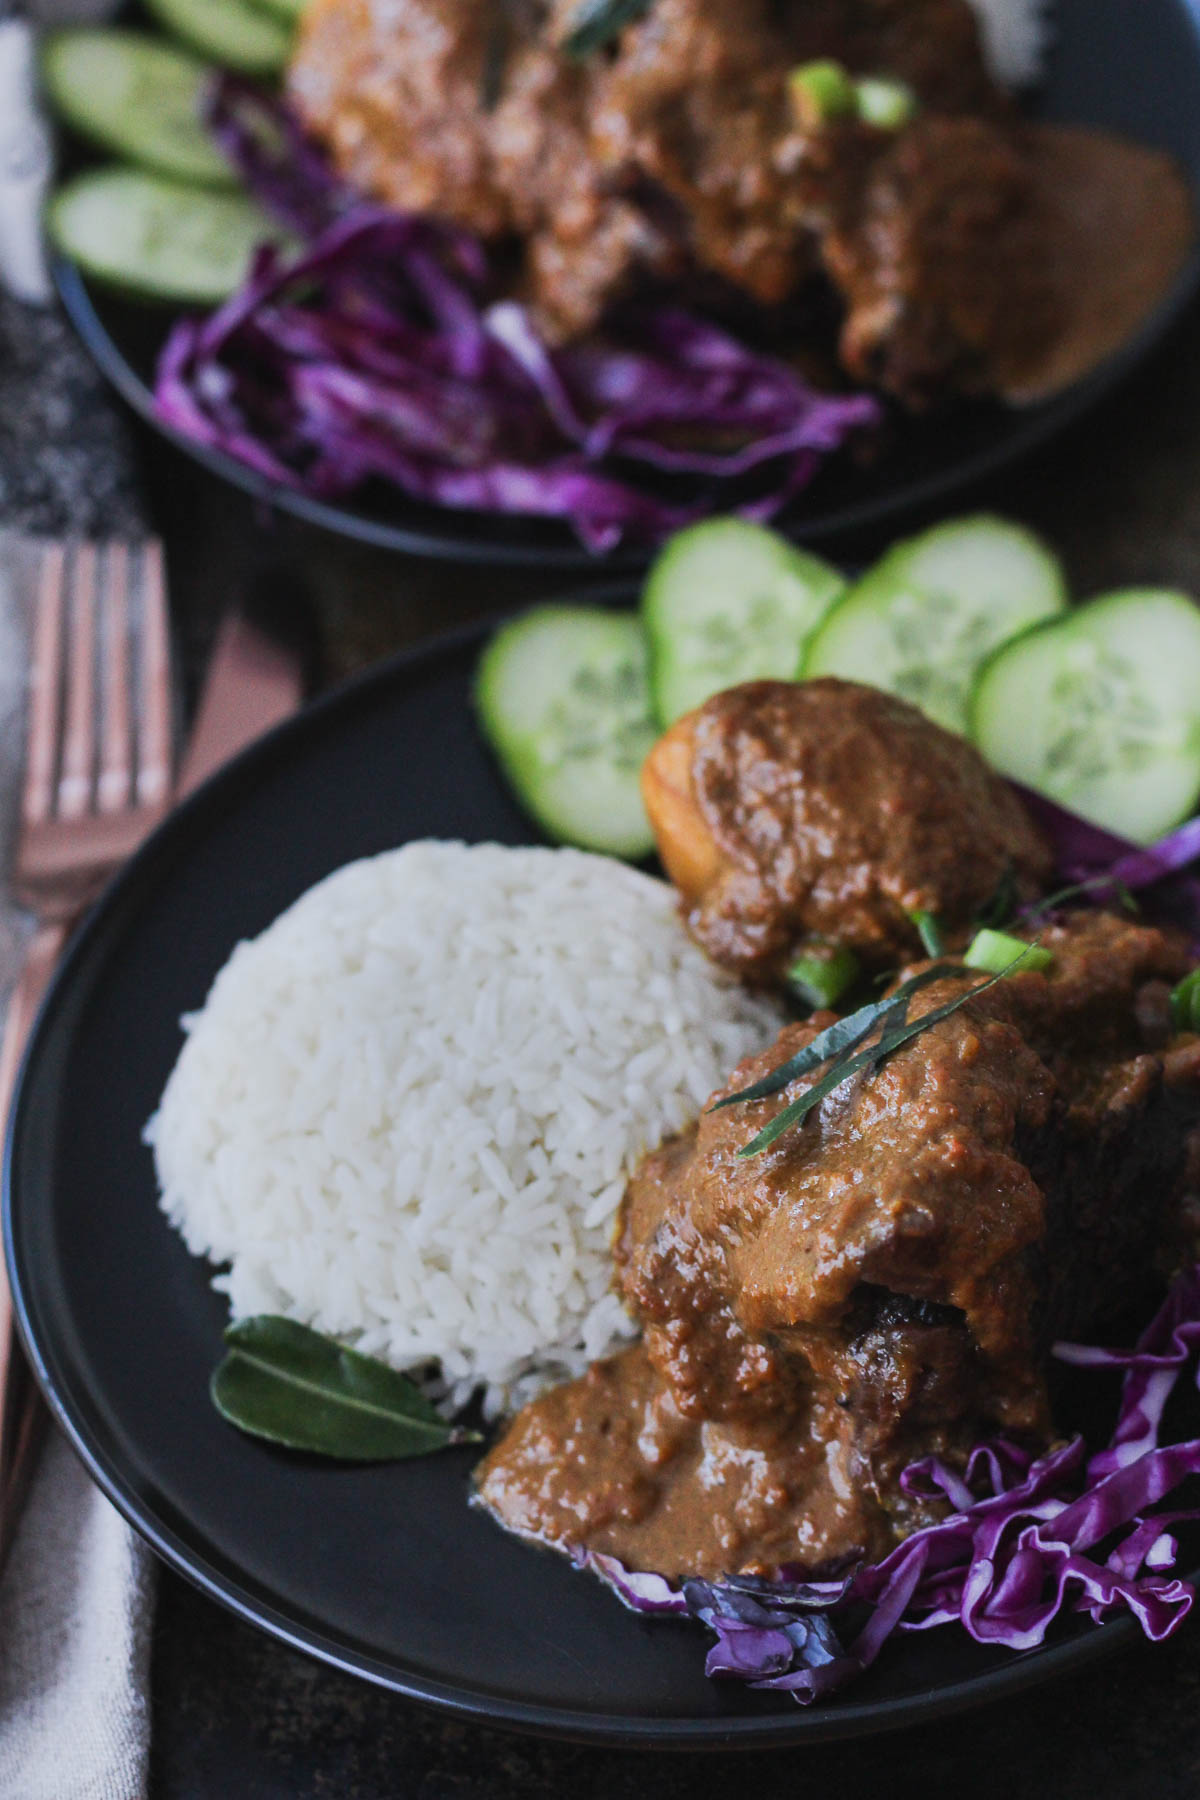 Beef Cheek Rendang served with white rice, sliced cucumbers and shredded red cabbage